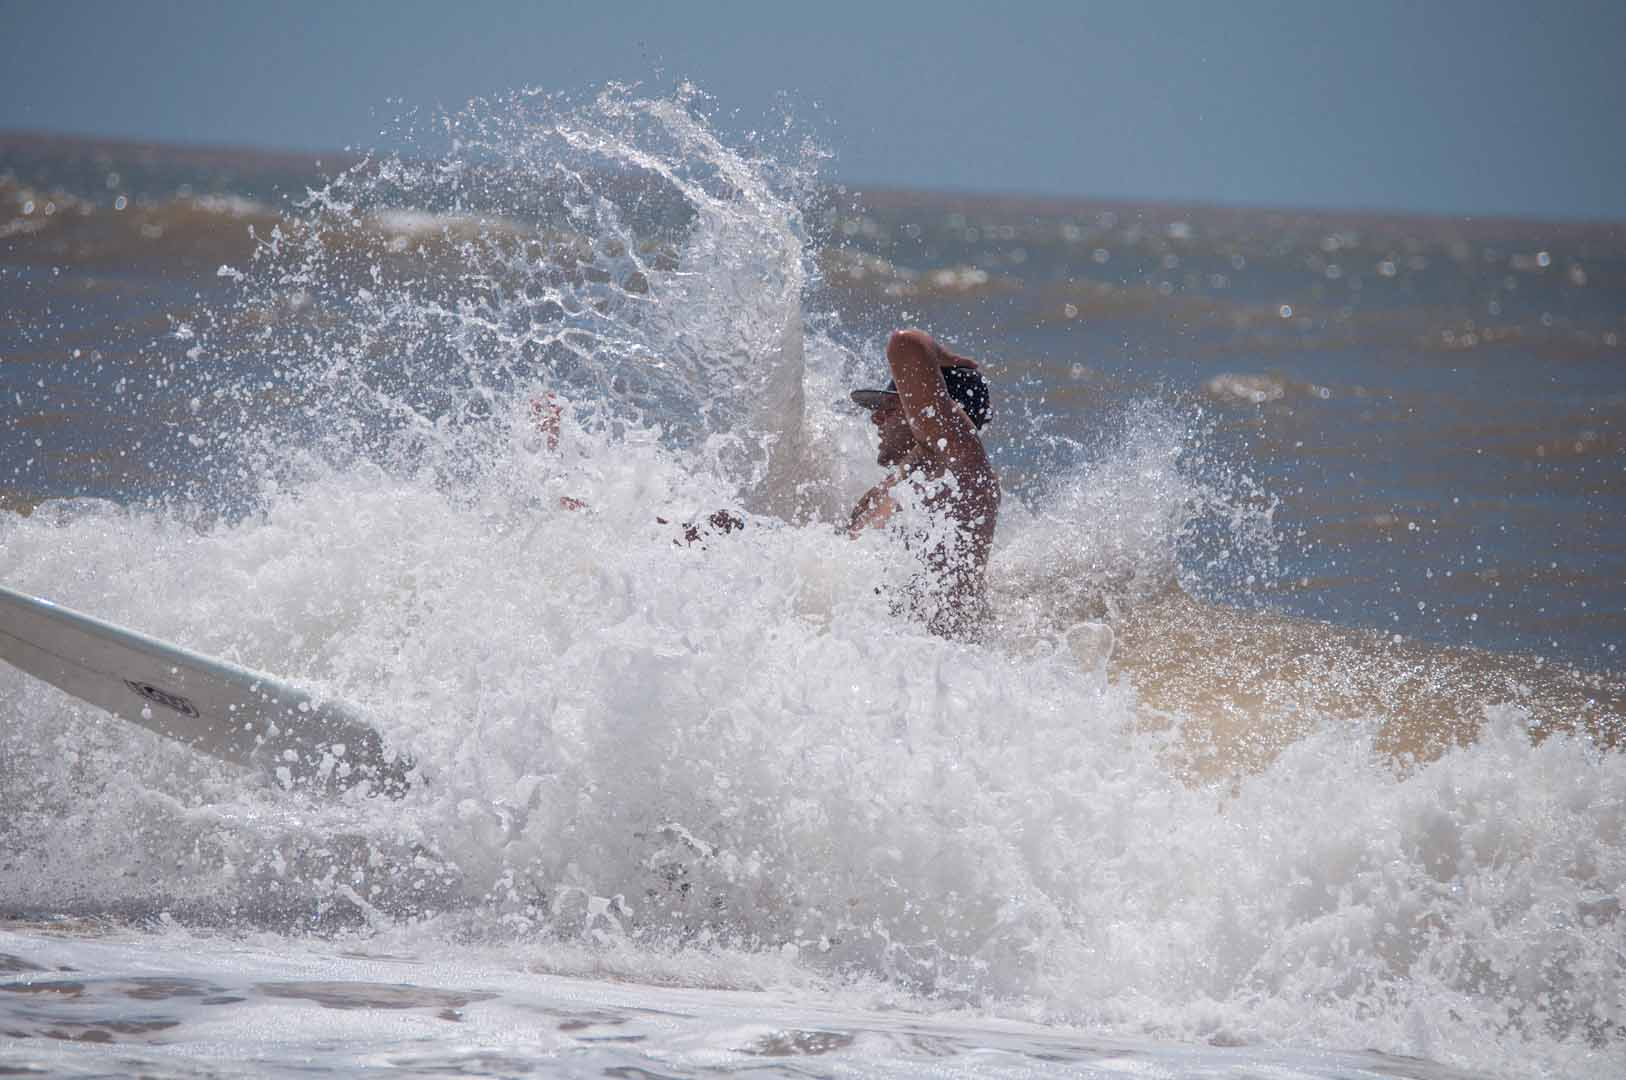 SurfsideLateJune_20150627_129